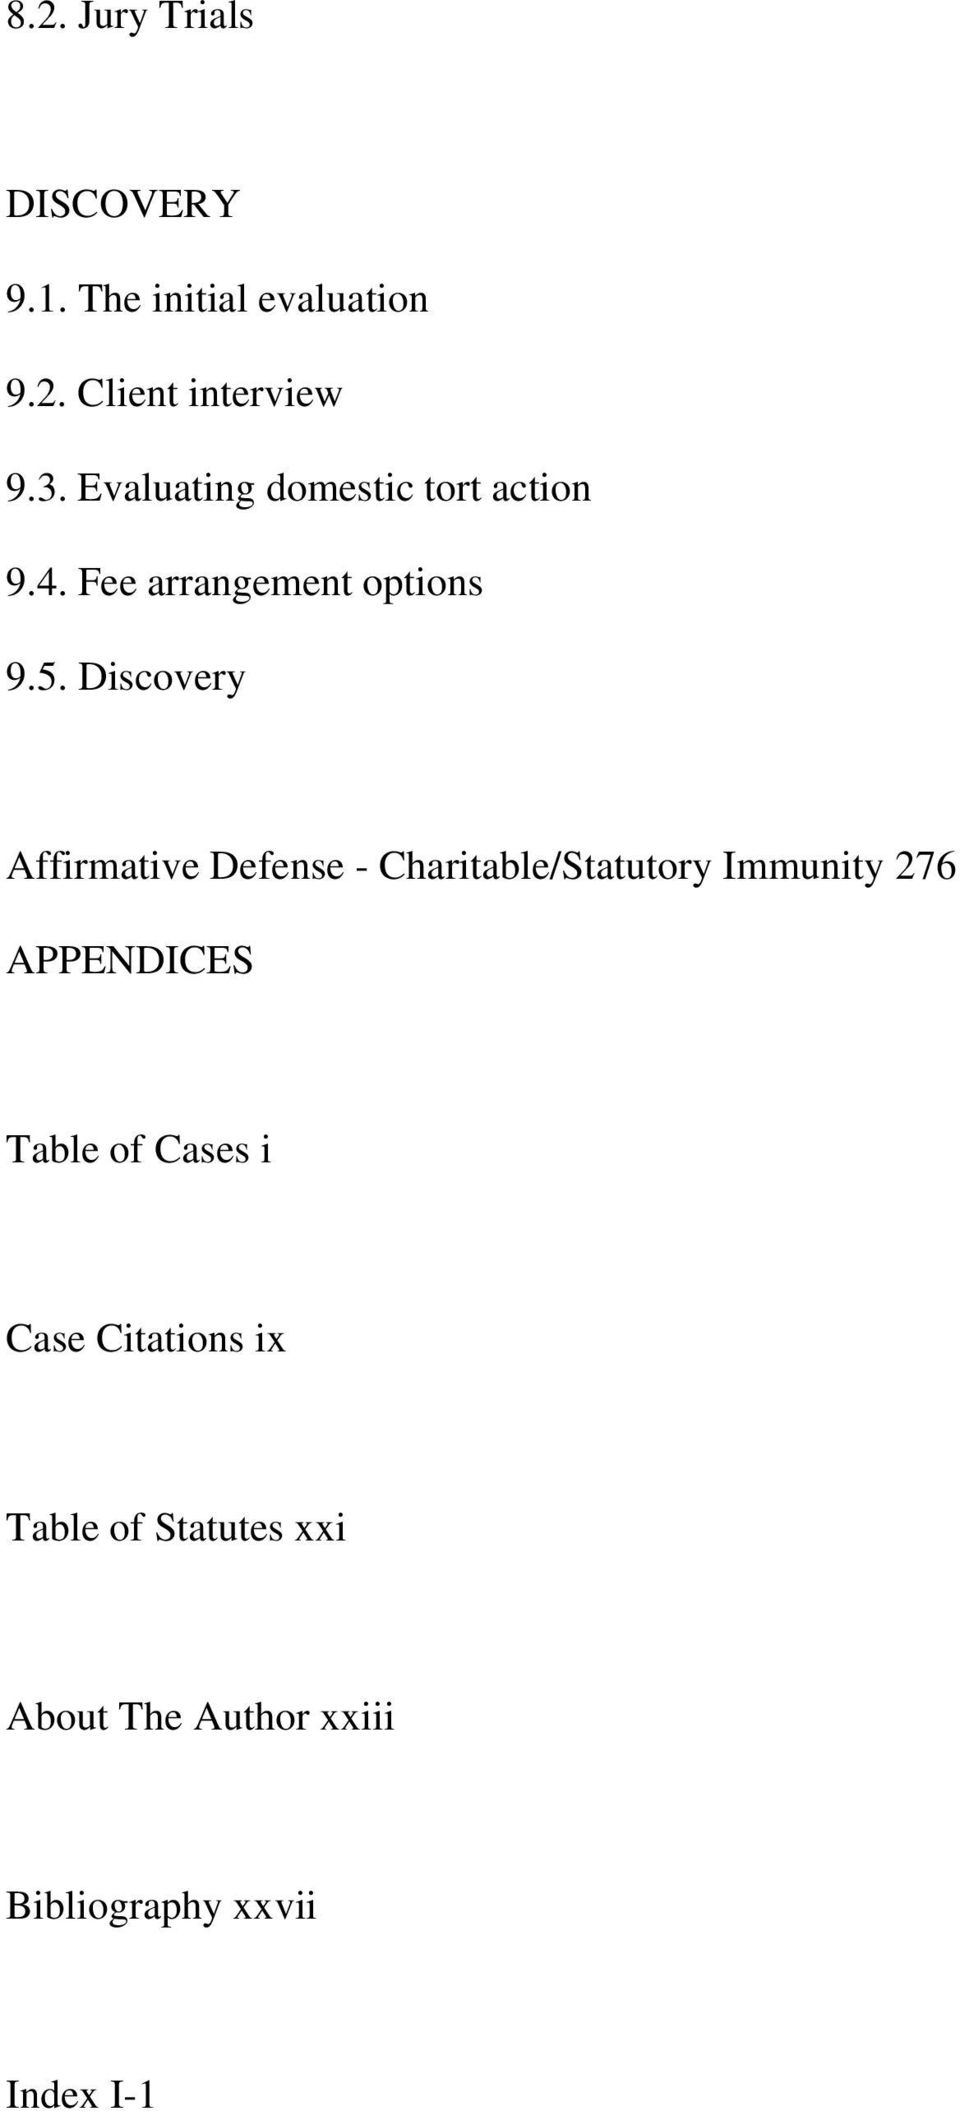 Discovery Affirmative Defense - Charitable/Statutory Immunity 276 APPENDICES Table